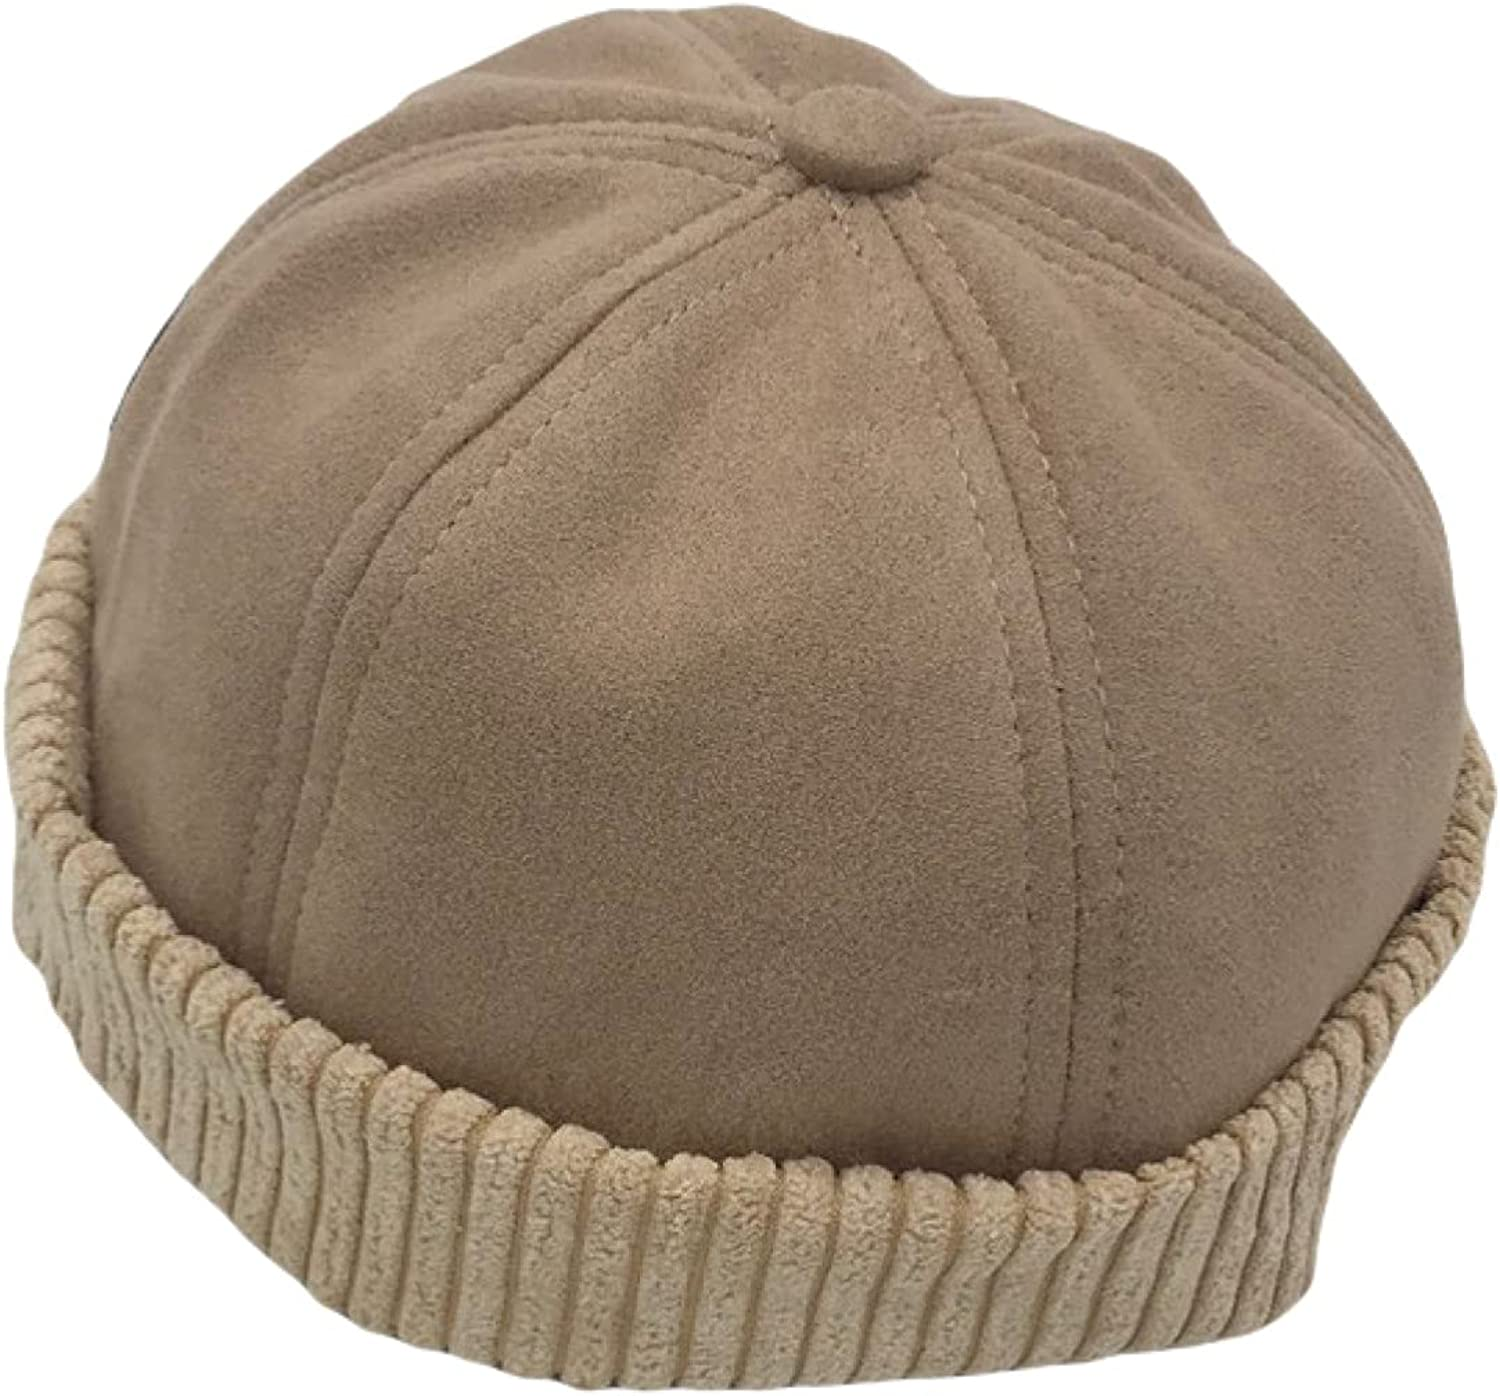 AOBRICON French Beret Hats for Women W Fashion Suede Spring Warm Al sold out. Safety and trust